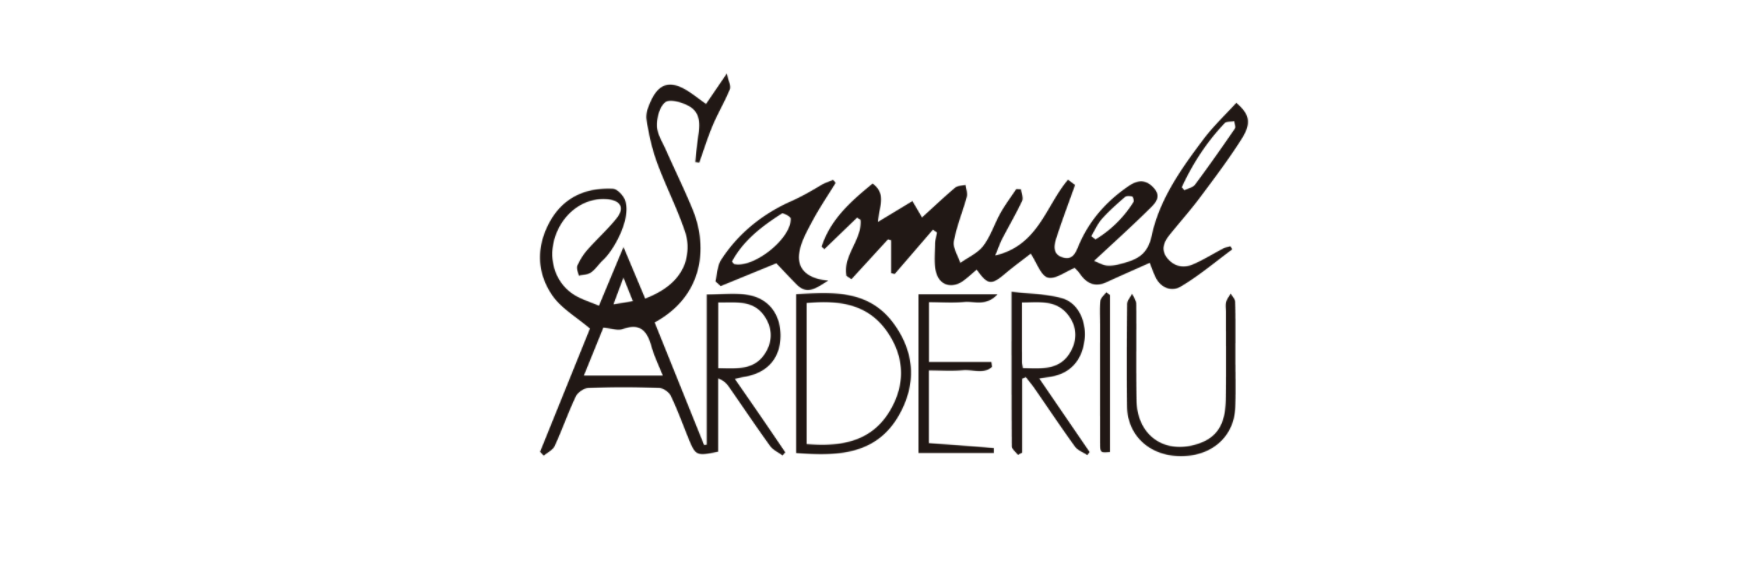 Image Samuel Arderiu Torrent Page